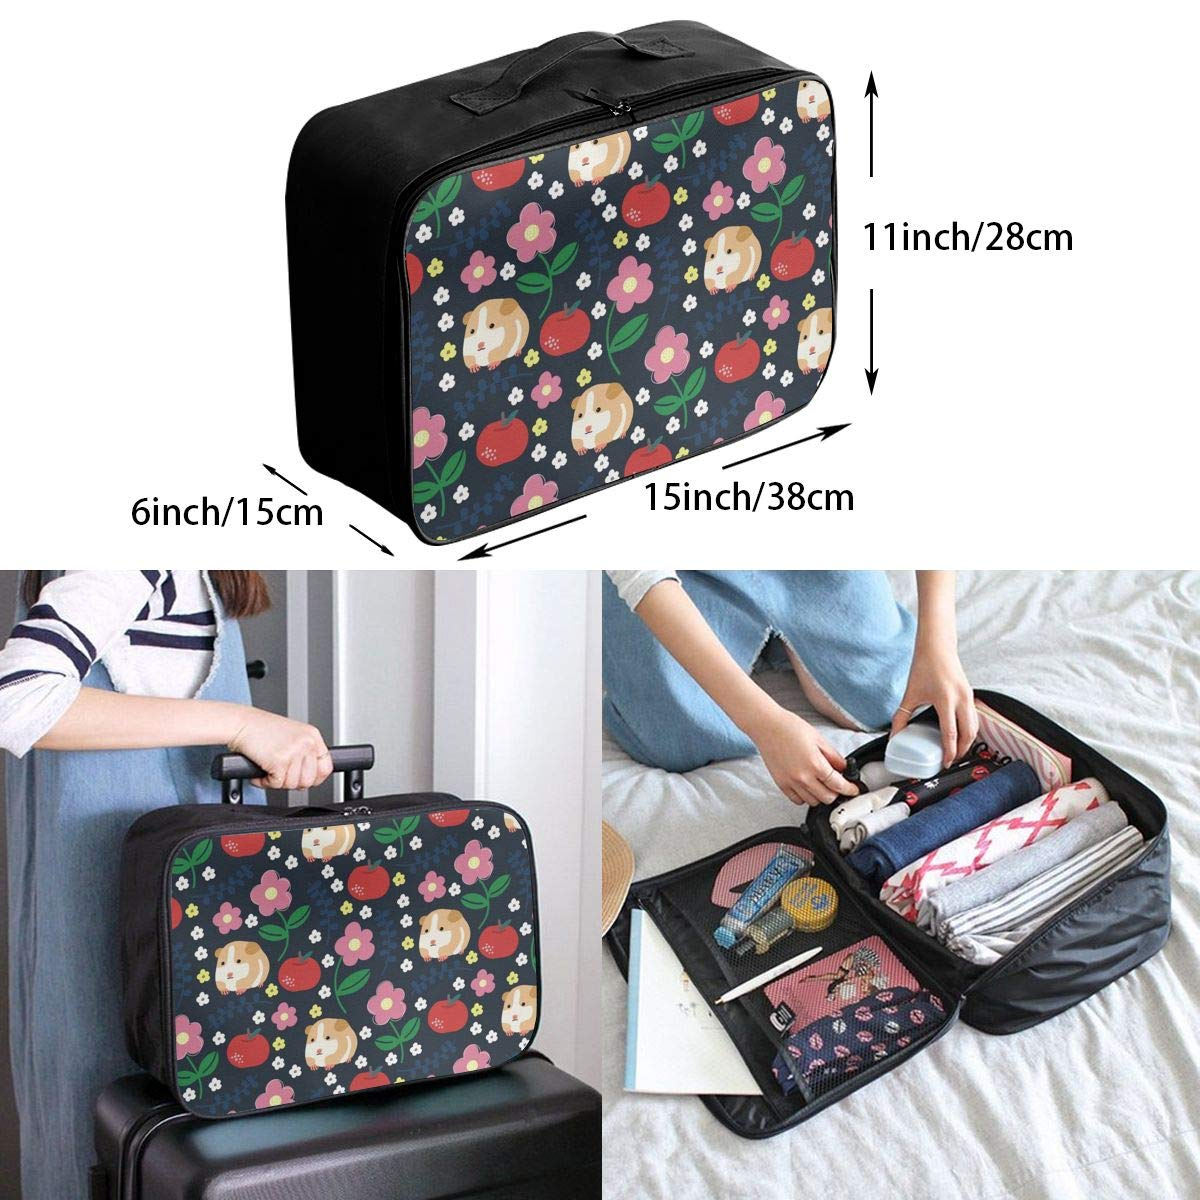 Guinea Pigs And Apples Travel Duffel Bag Waterproof Fashion Lightweight Large Capacity Portable Luggage Bag